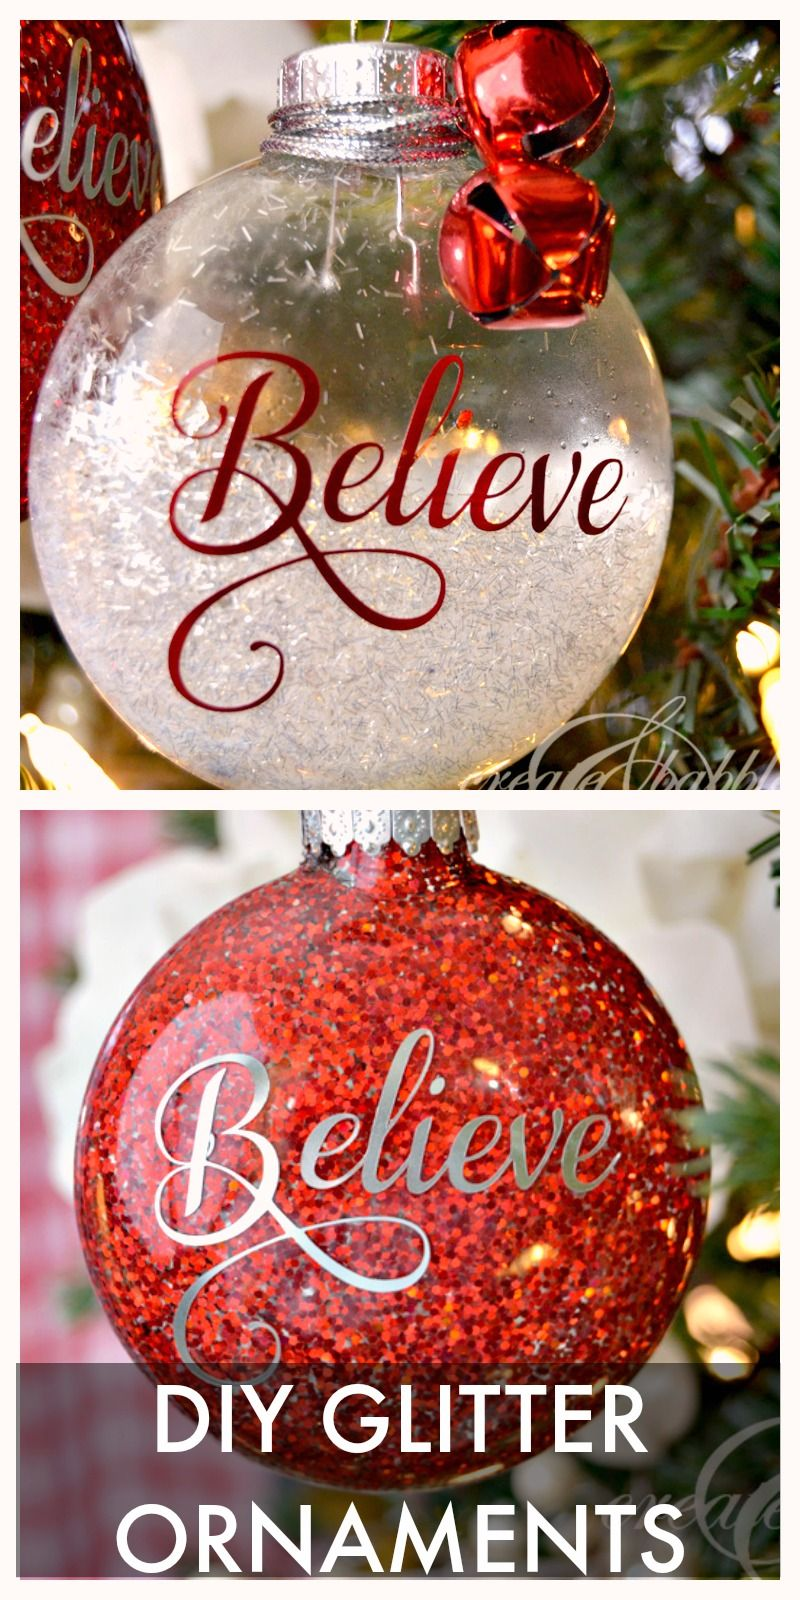 Yearly christmas ornaments - Diy Glitter Christmas Ornaments